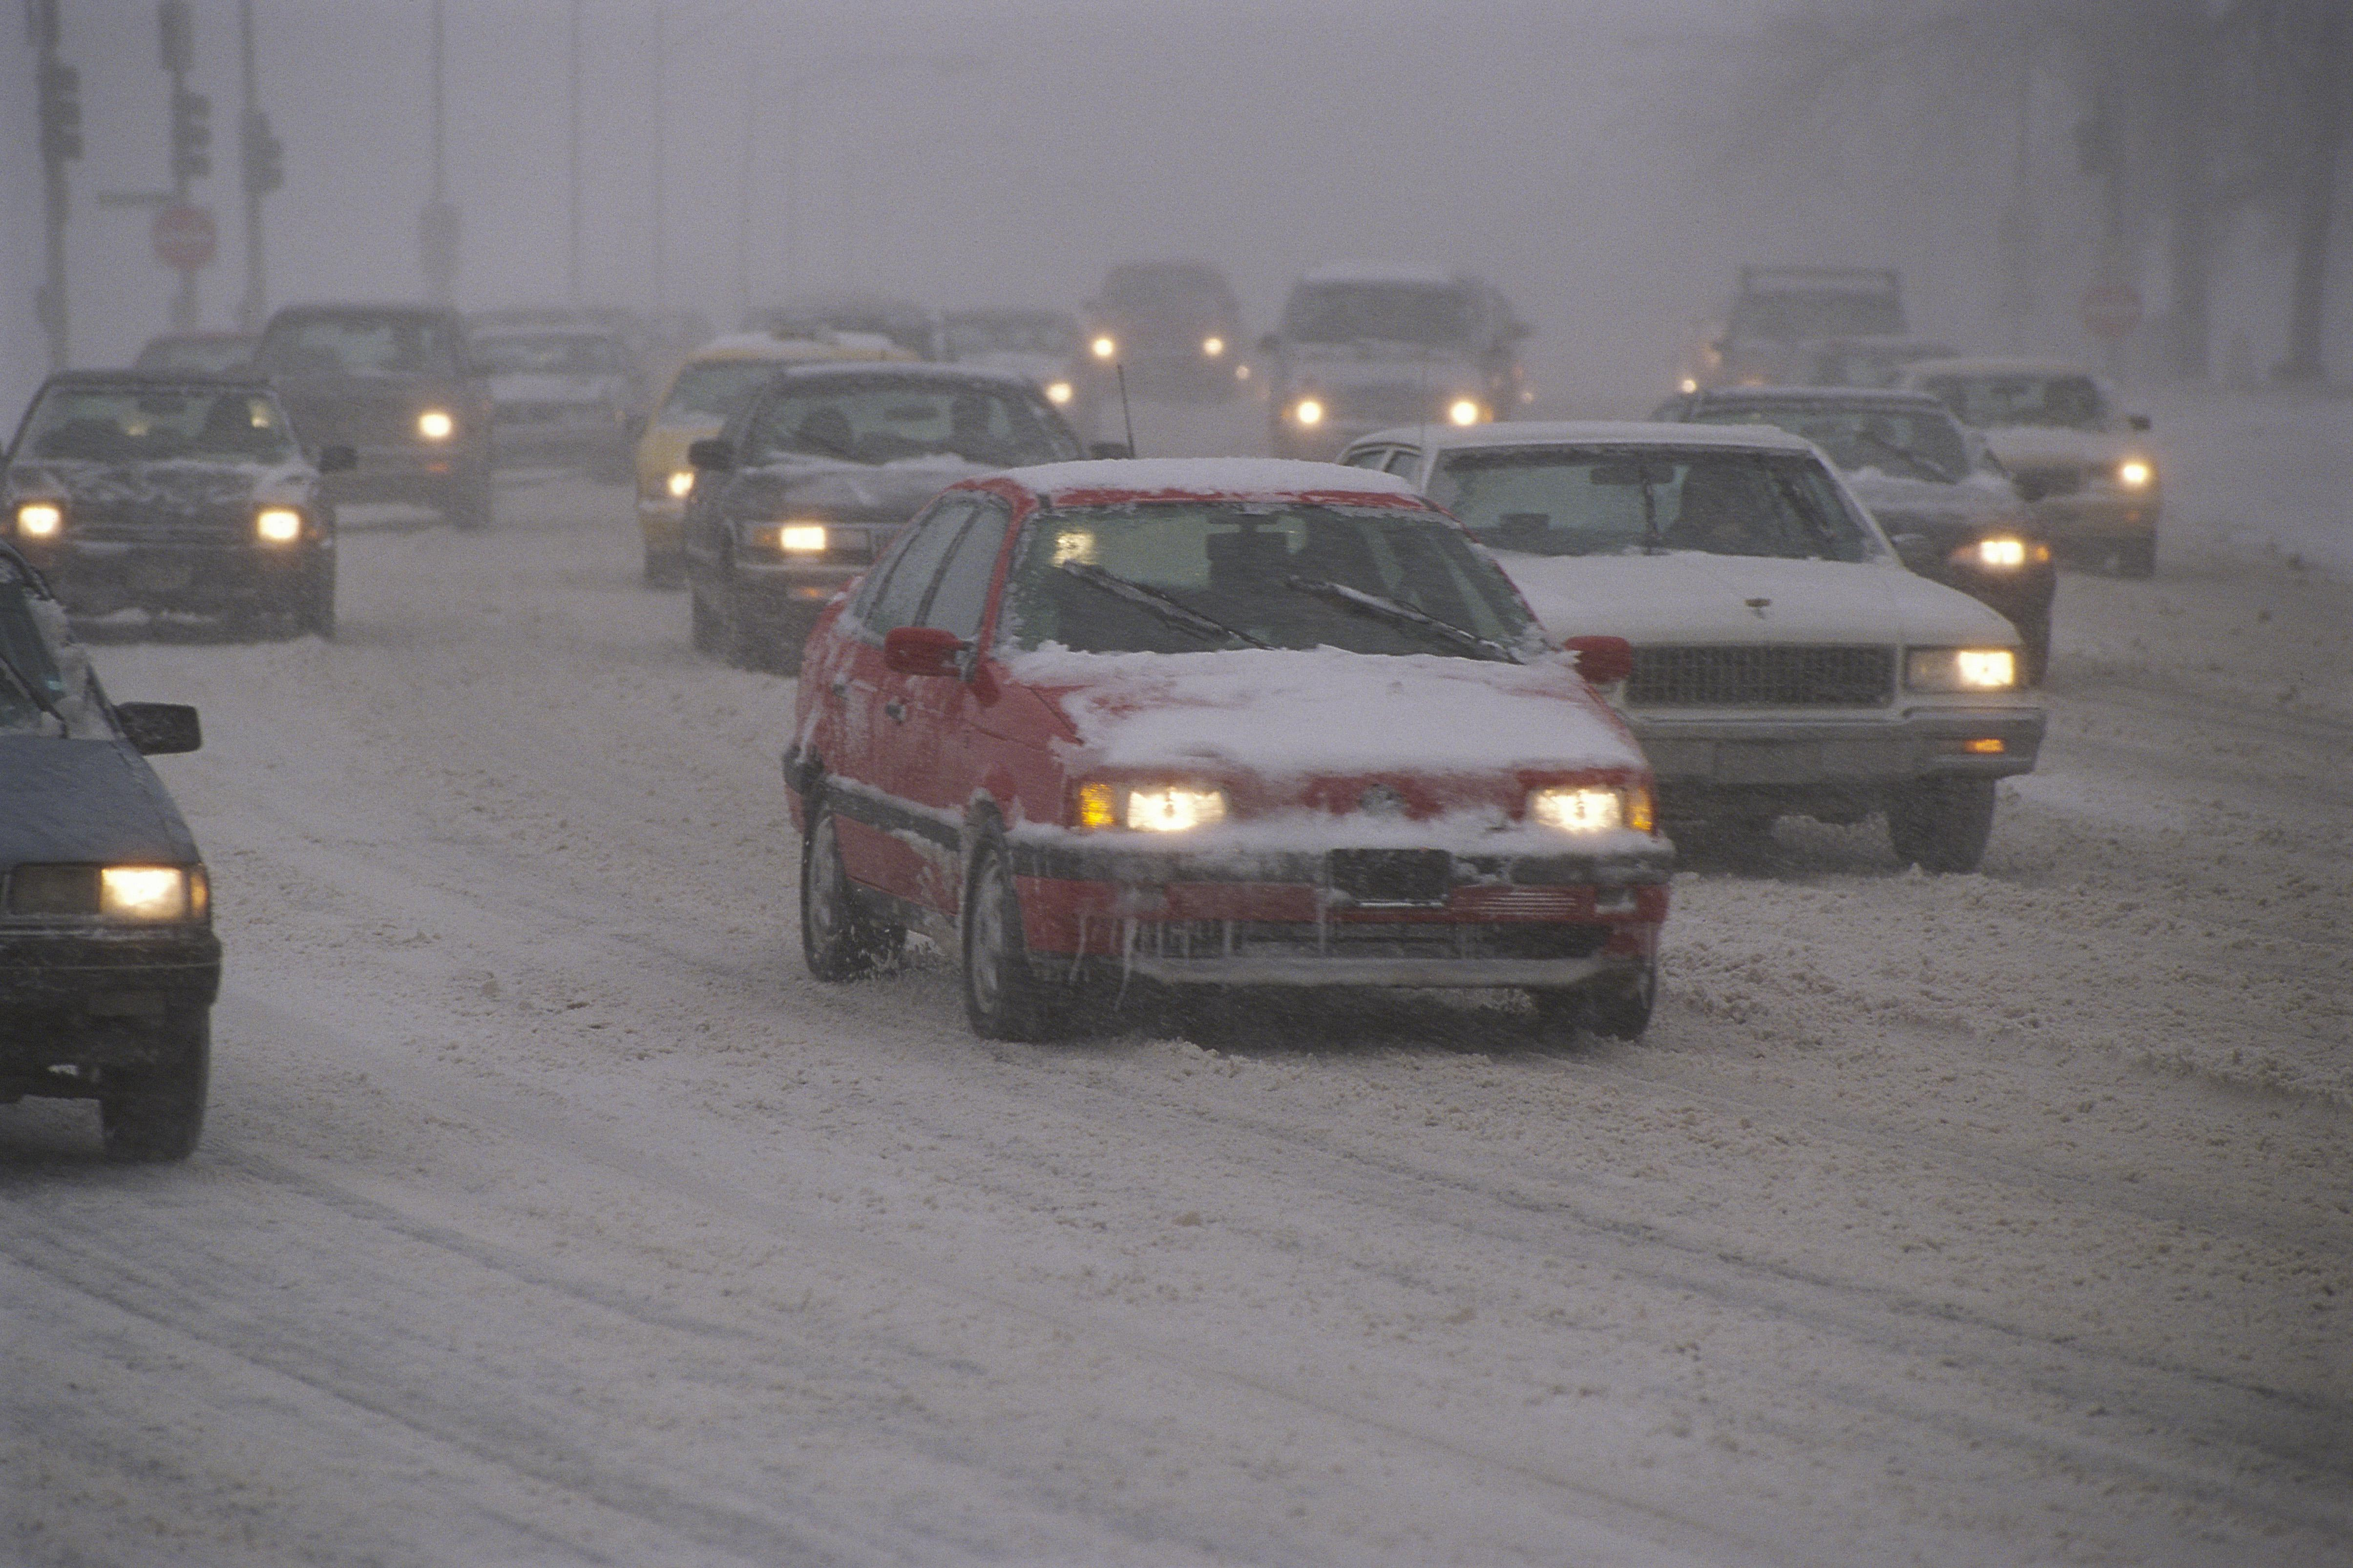 Traffic driving in snowstorm